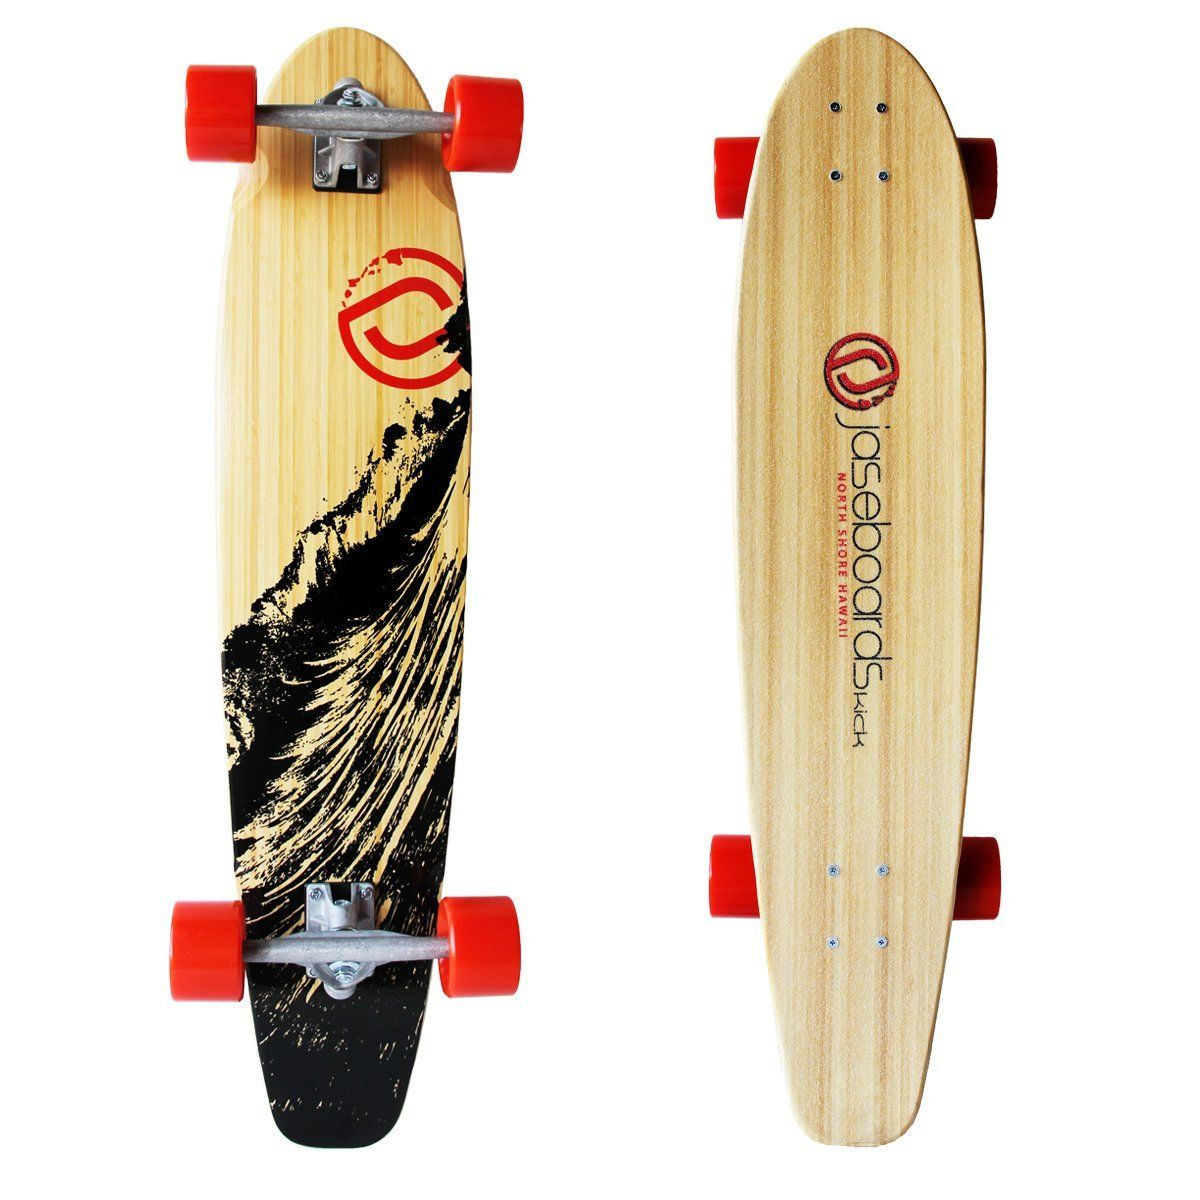 Amazon.com : Jaseboards **SURPLUS** 38'' Kicktail Bamboo Longboard : Sports & Outdoors